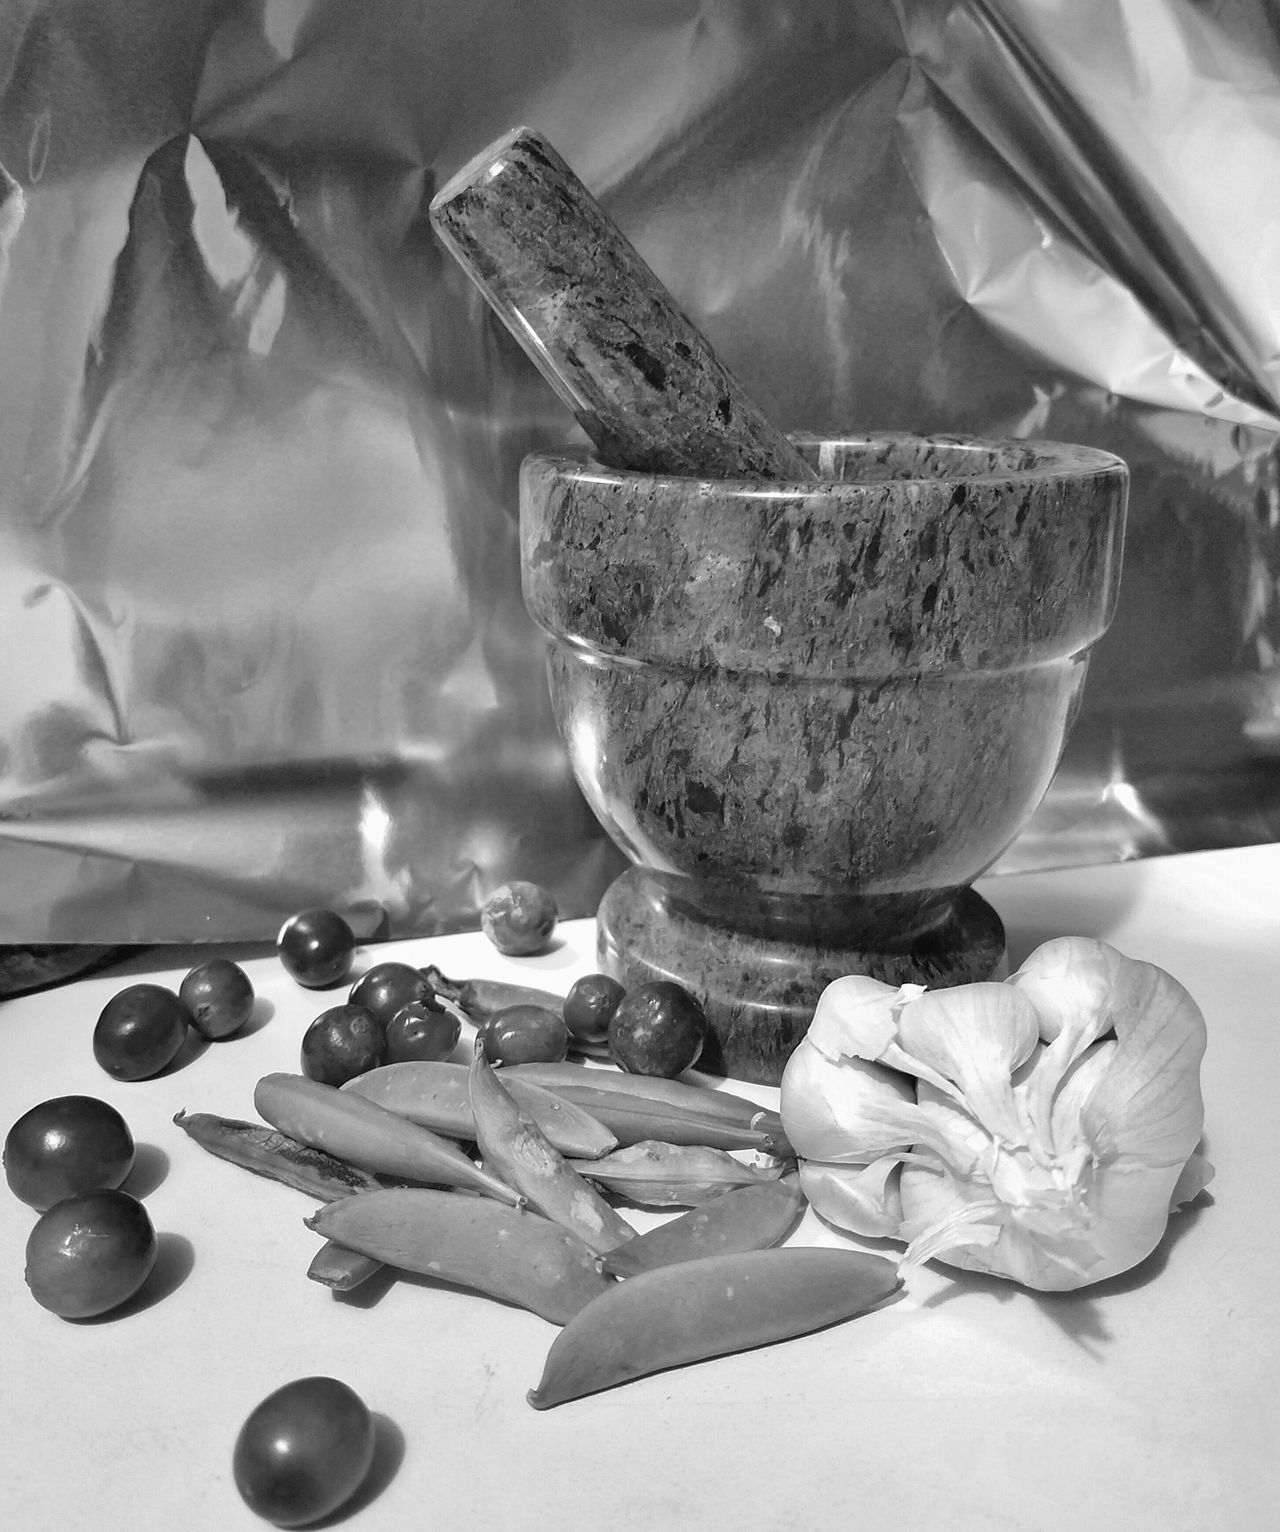 Pestarello Close-up Day Flower Food Freshness Indoors  Mortar And Pestle MUR B&W No People Table MUR On EyeEm